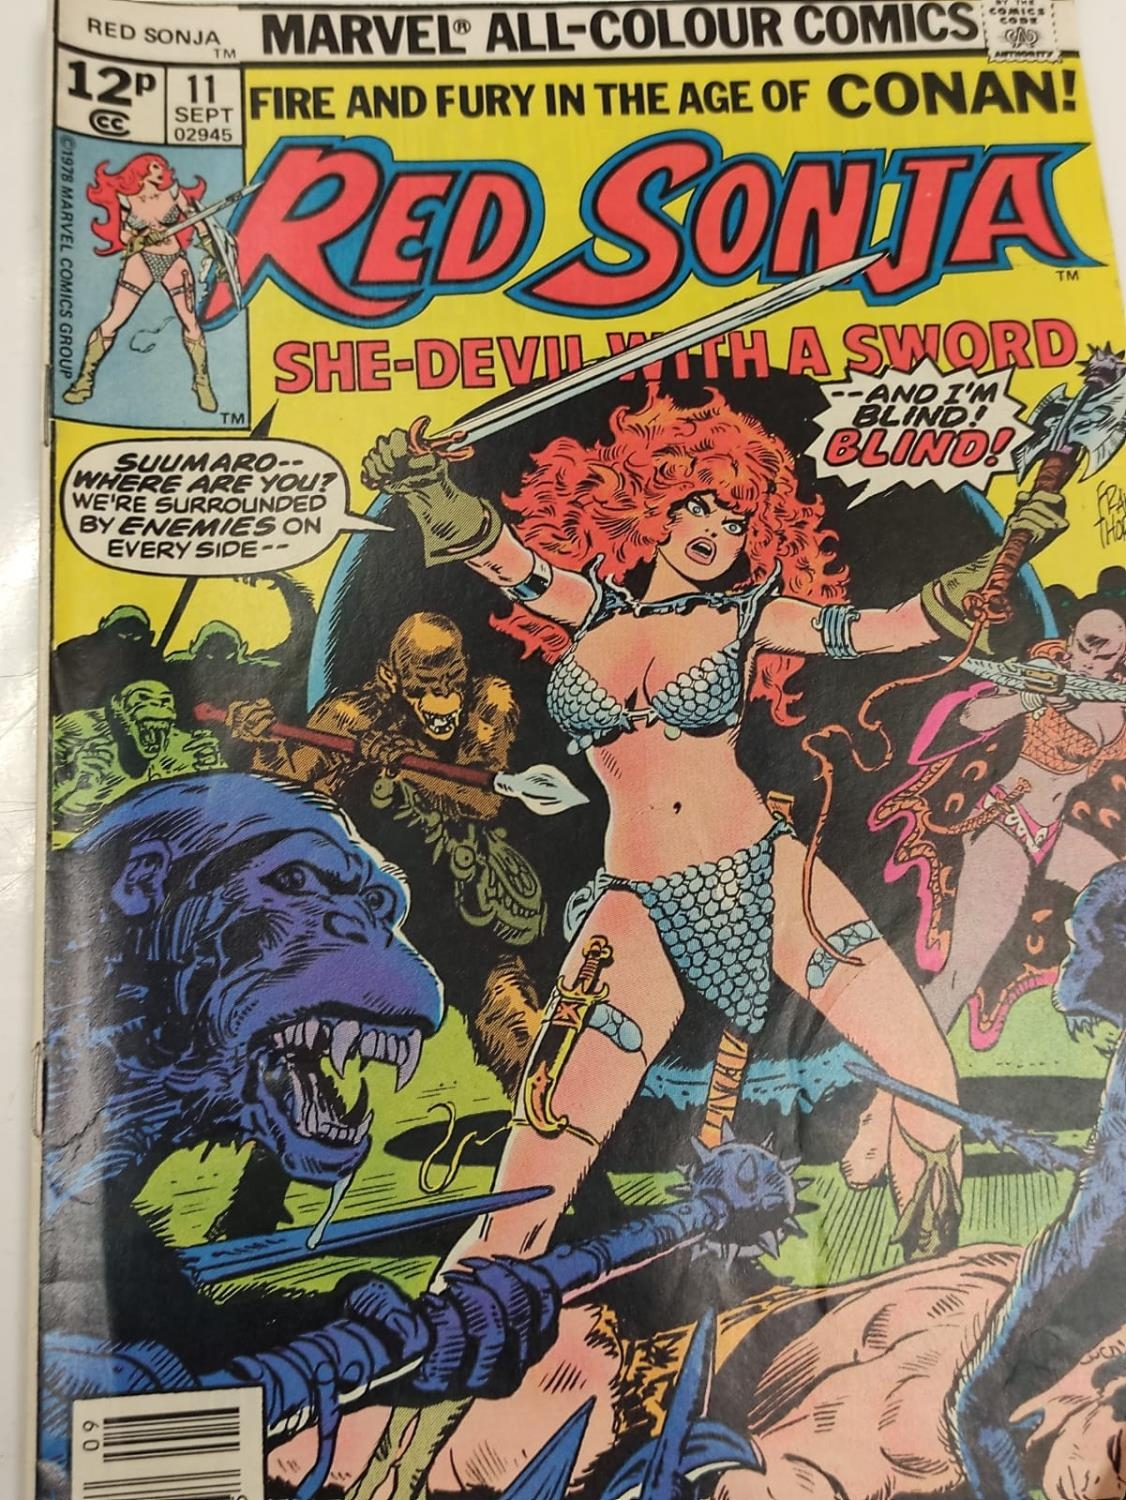 5 editions of Special Vintage Marvel Comics including 'The Tomb of Dracula'. - Image 5 of 15